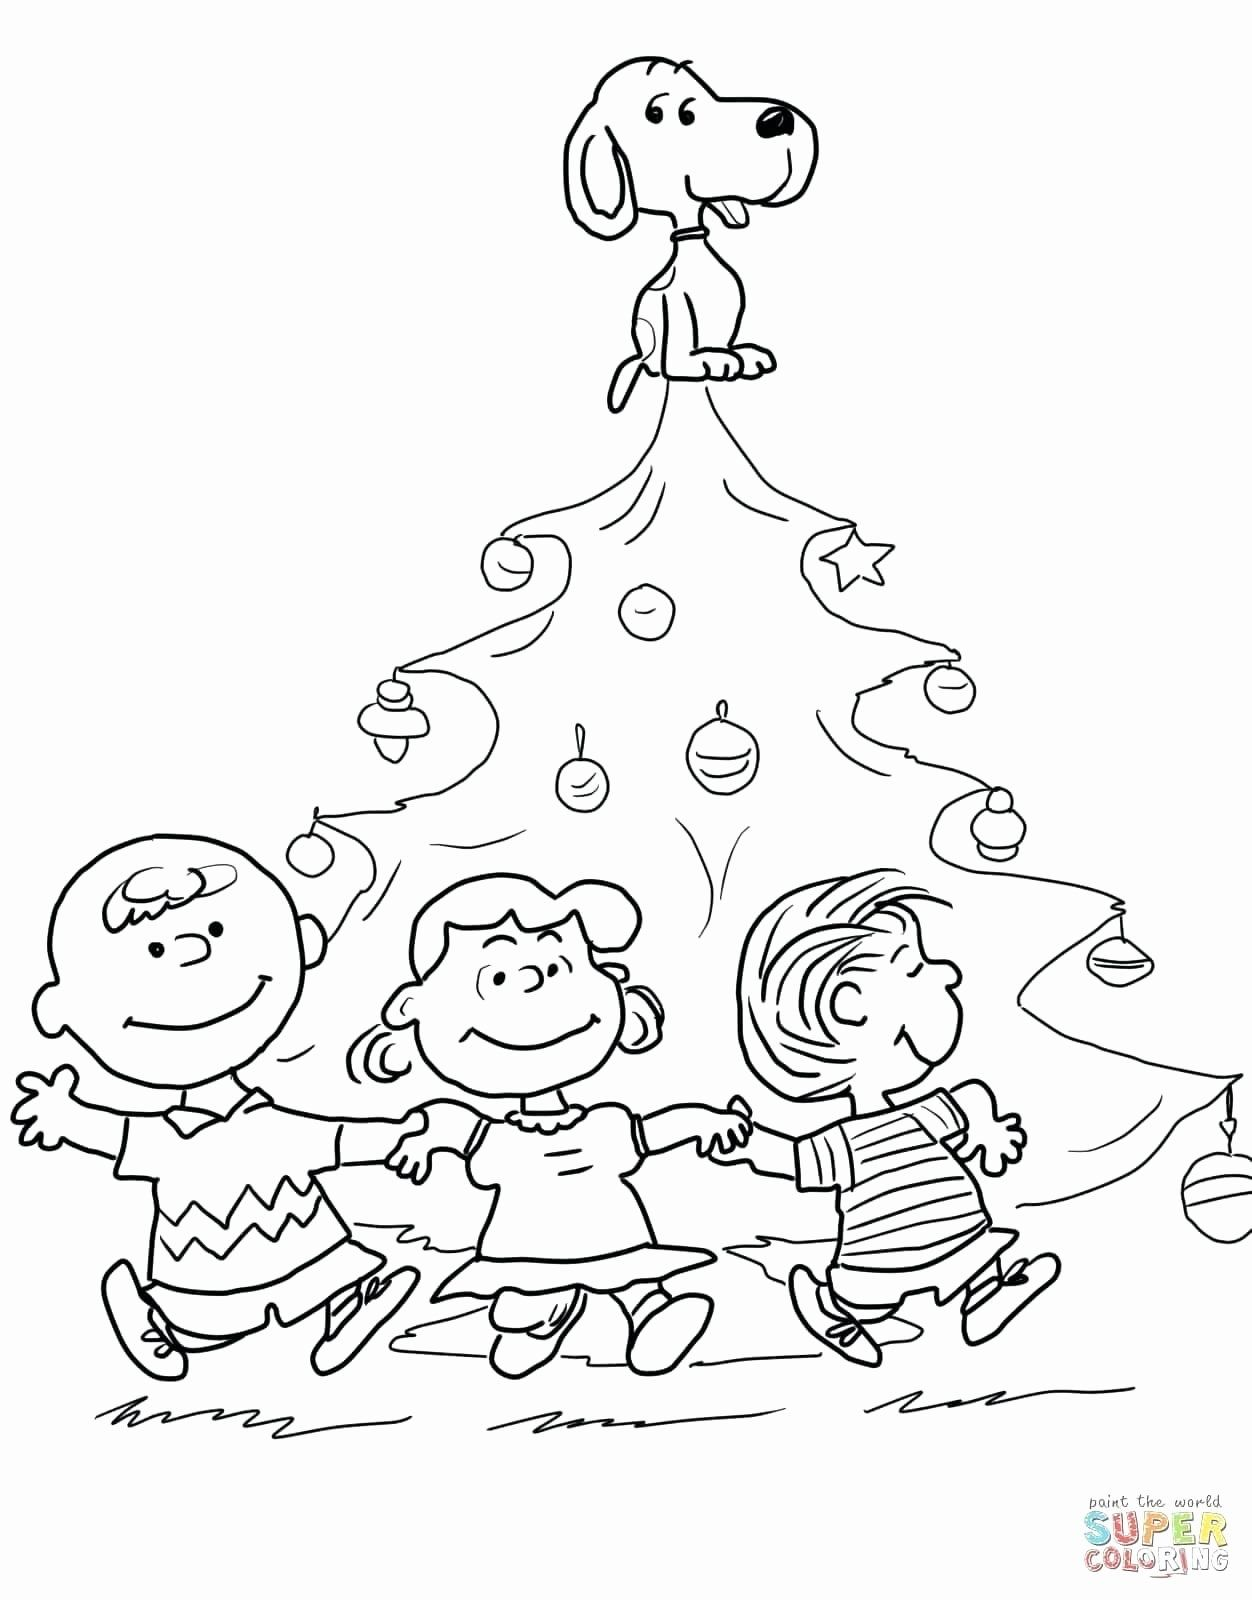 Coloring Book Evergreen Tree Coloring Pages Gallery Halloween Coloring Pages Christmas Coloring Sheets Christmas Tree Coloring Page